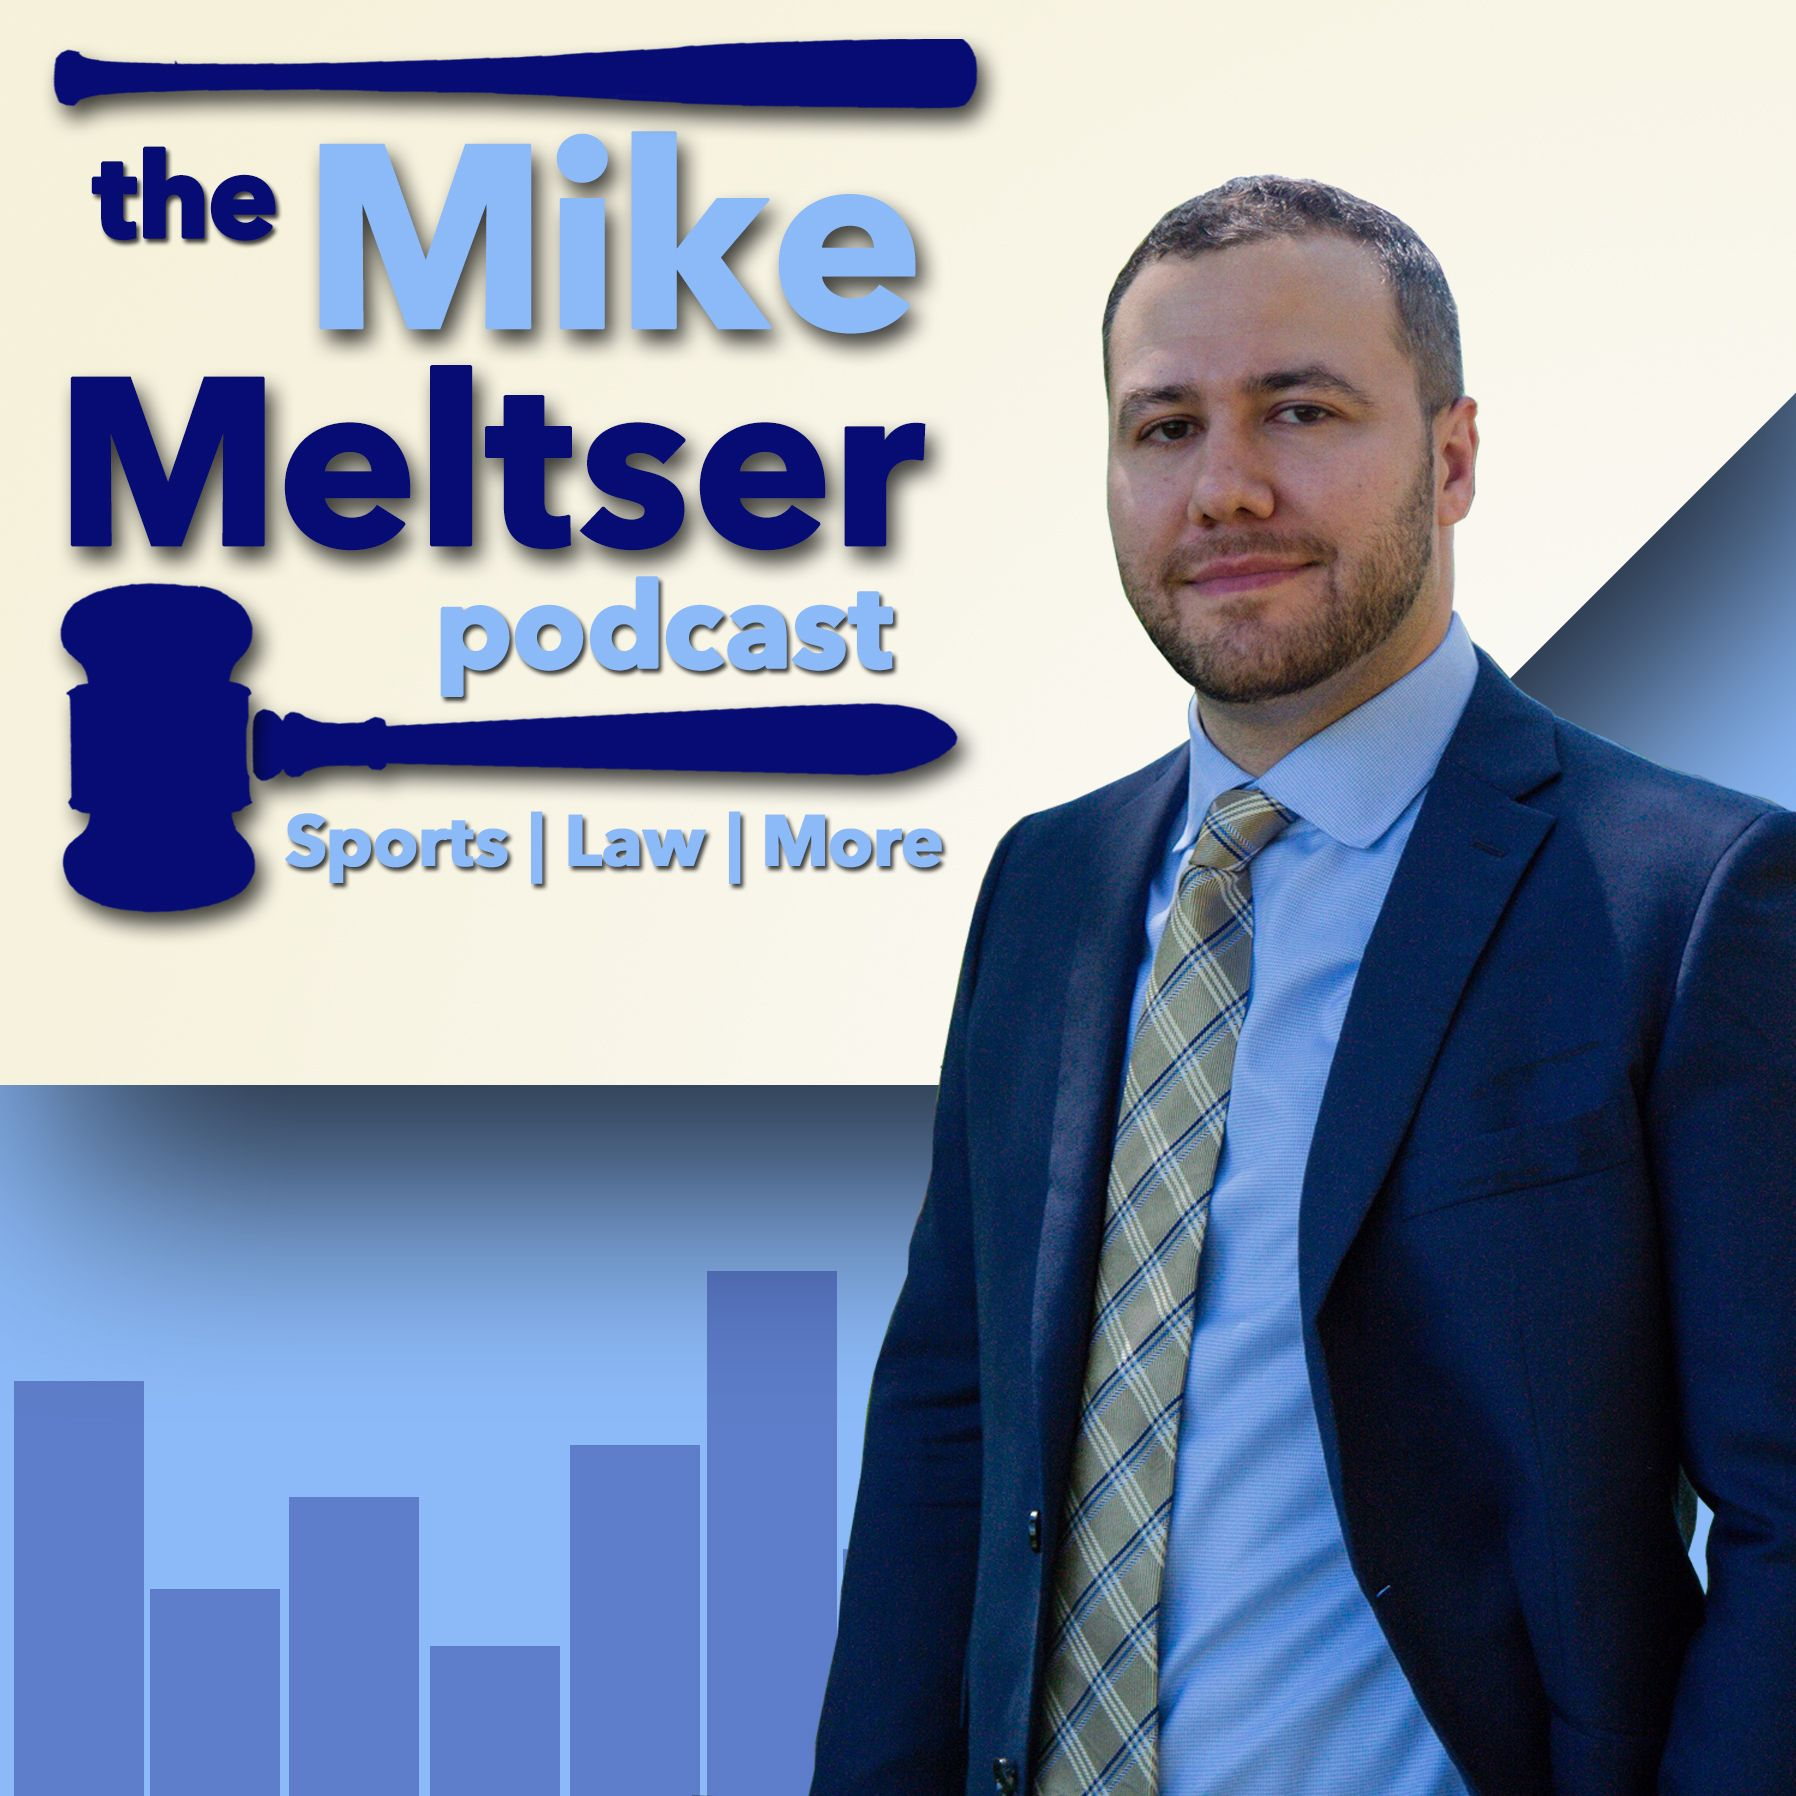 45 - Hinch and Luhnow Suspensions, Astros Lawsuit, and NFLPA Fight show art